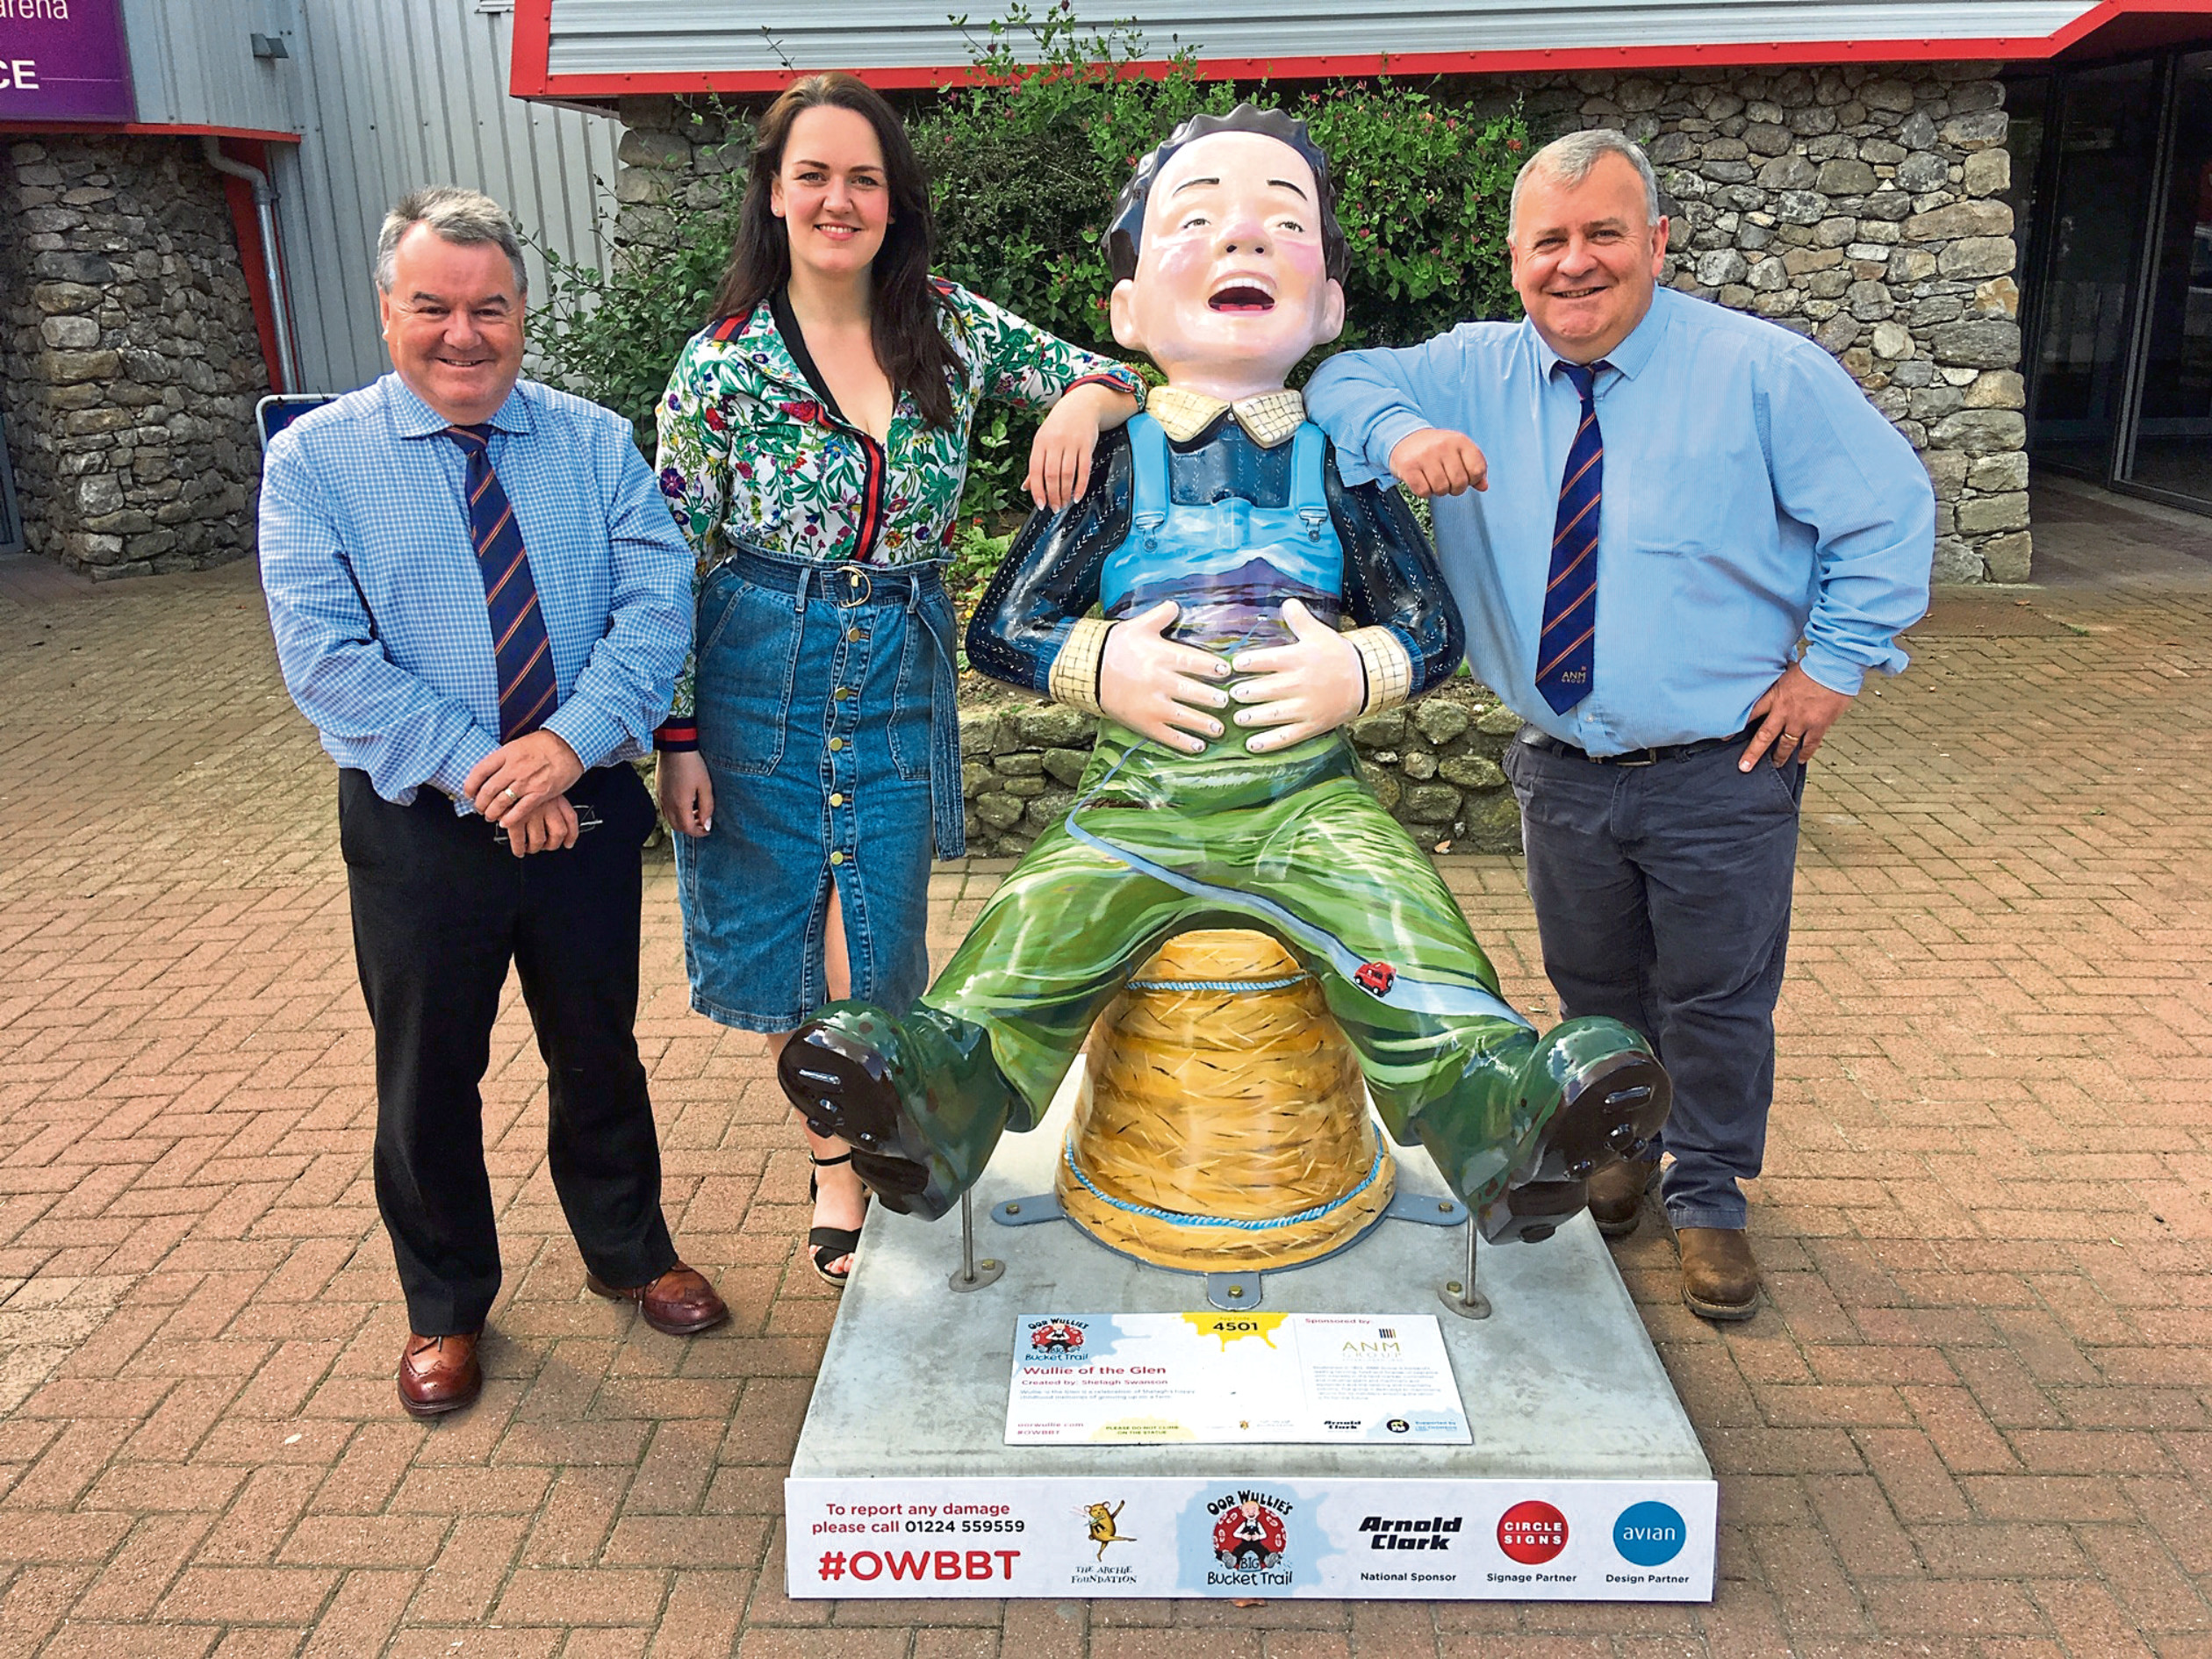 Auctioneers Alan Hutcheon and Colin Slessor with Shelagh Swanson, the artist of 'Wullie of the Glen' located at the front entrance of Thainstone Centre